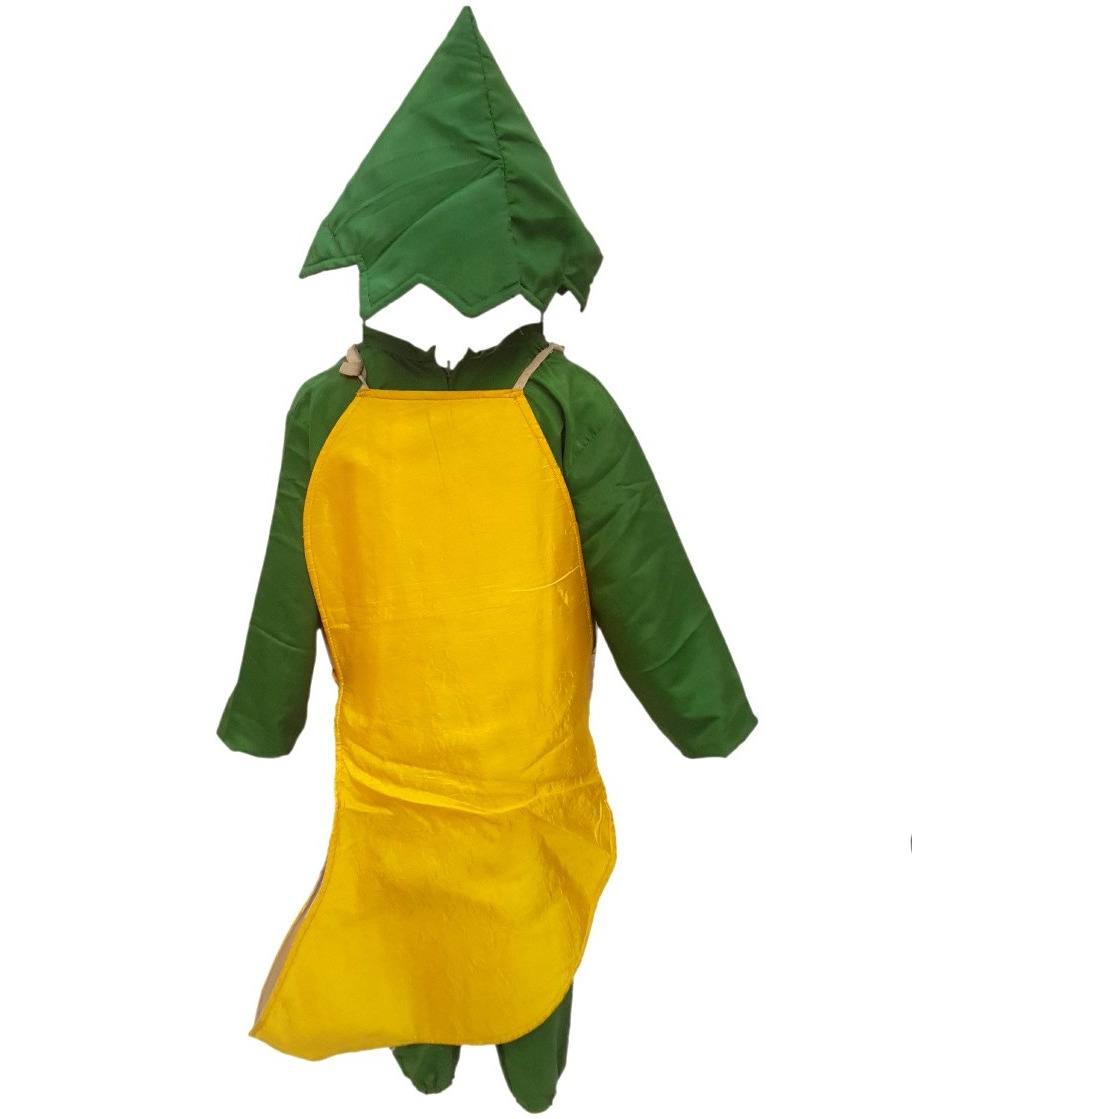 KFD Smily Banana fancy dress for kids,Fruits Costume for School Annual function/Theme Party/Competition/Stage Shows Dress (Size:5 TO 6)